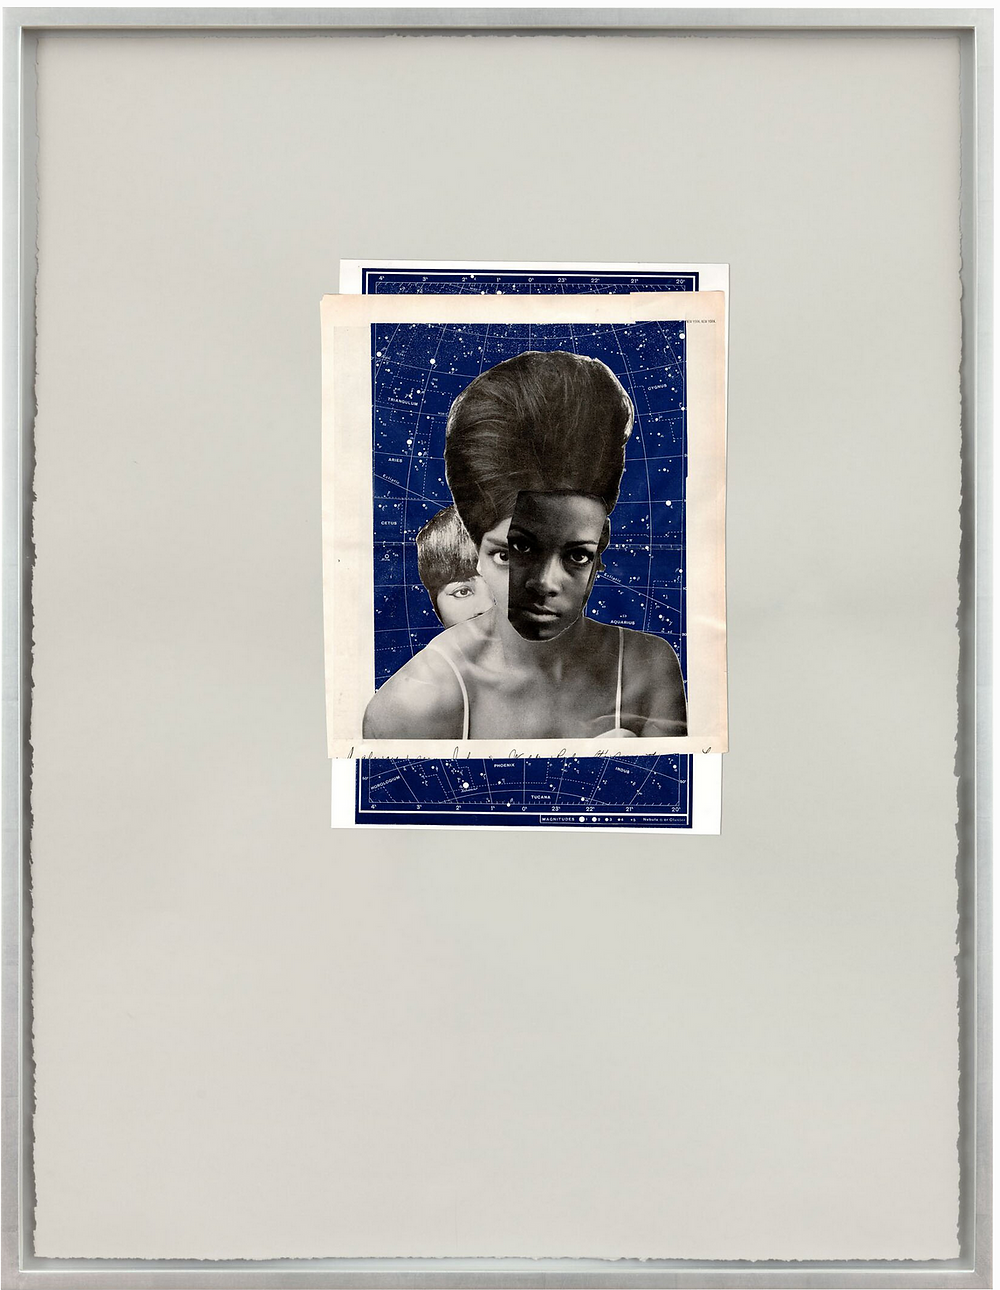 collage of african american women in front of constellation patterned paper